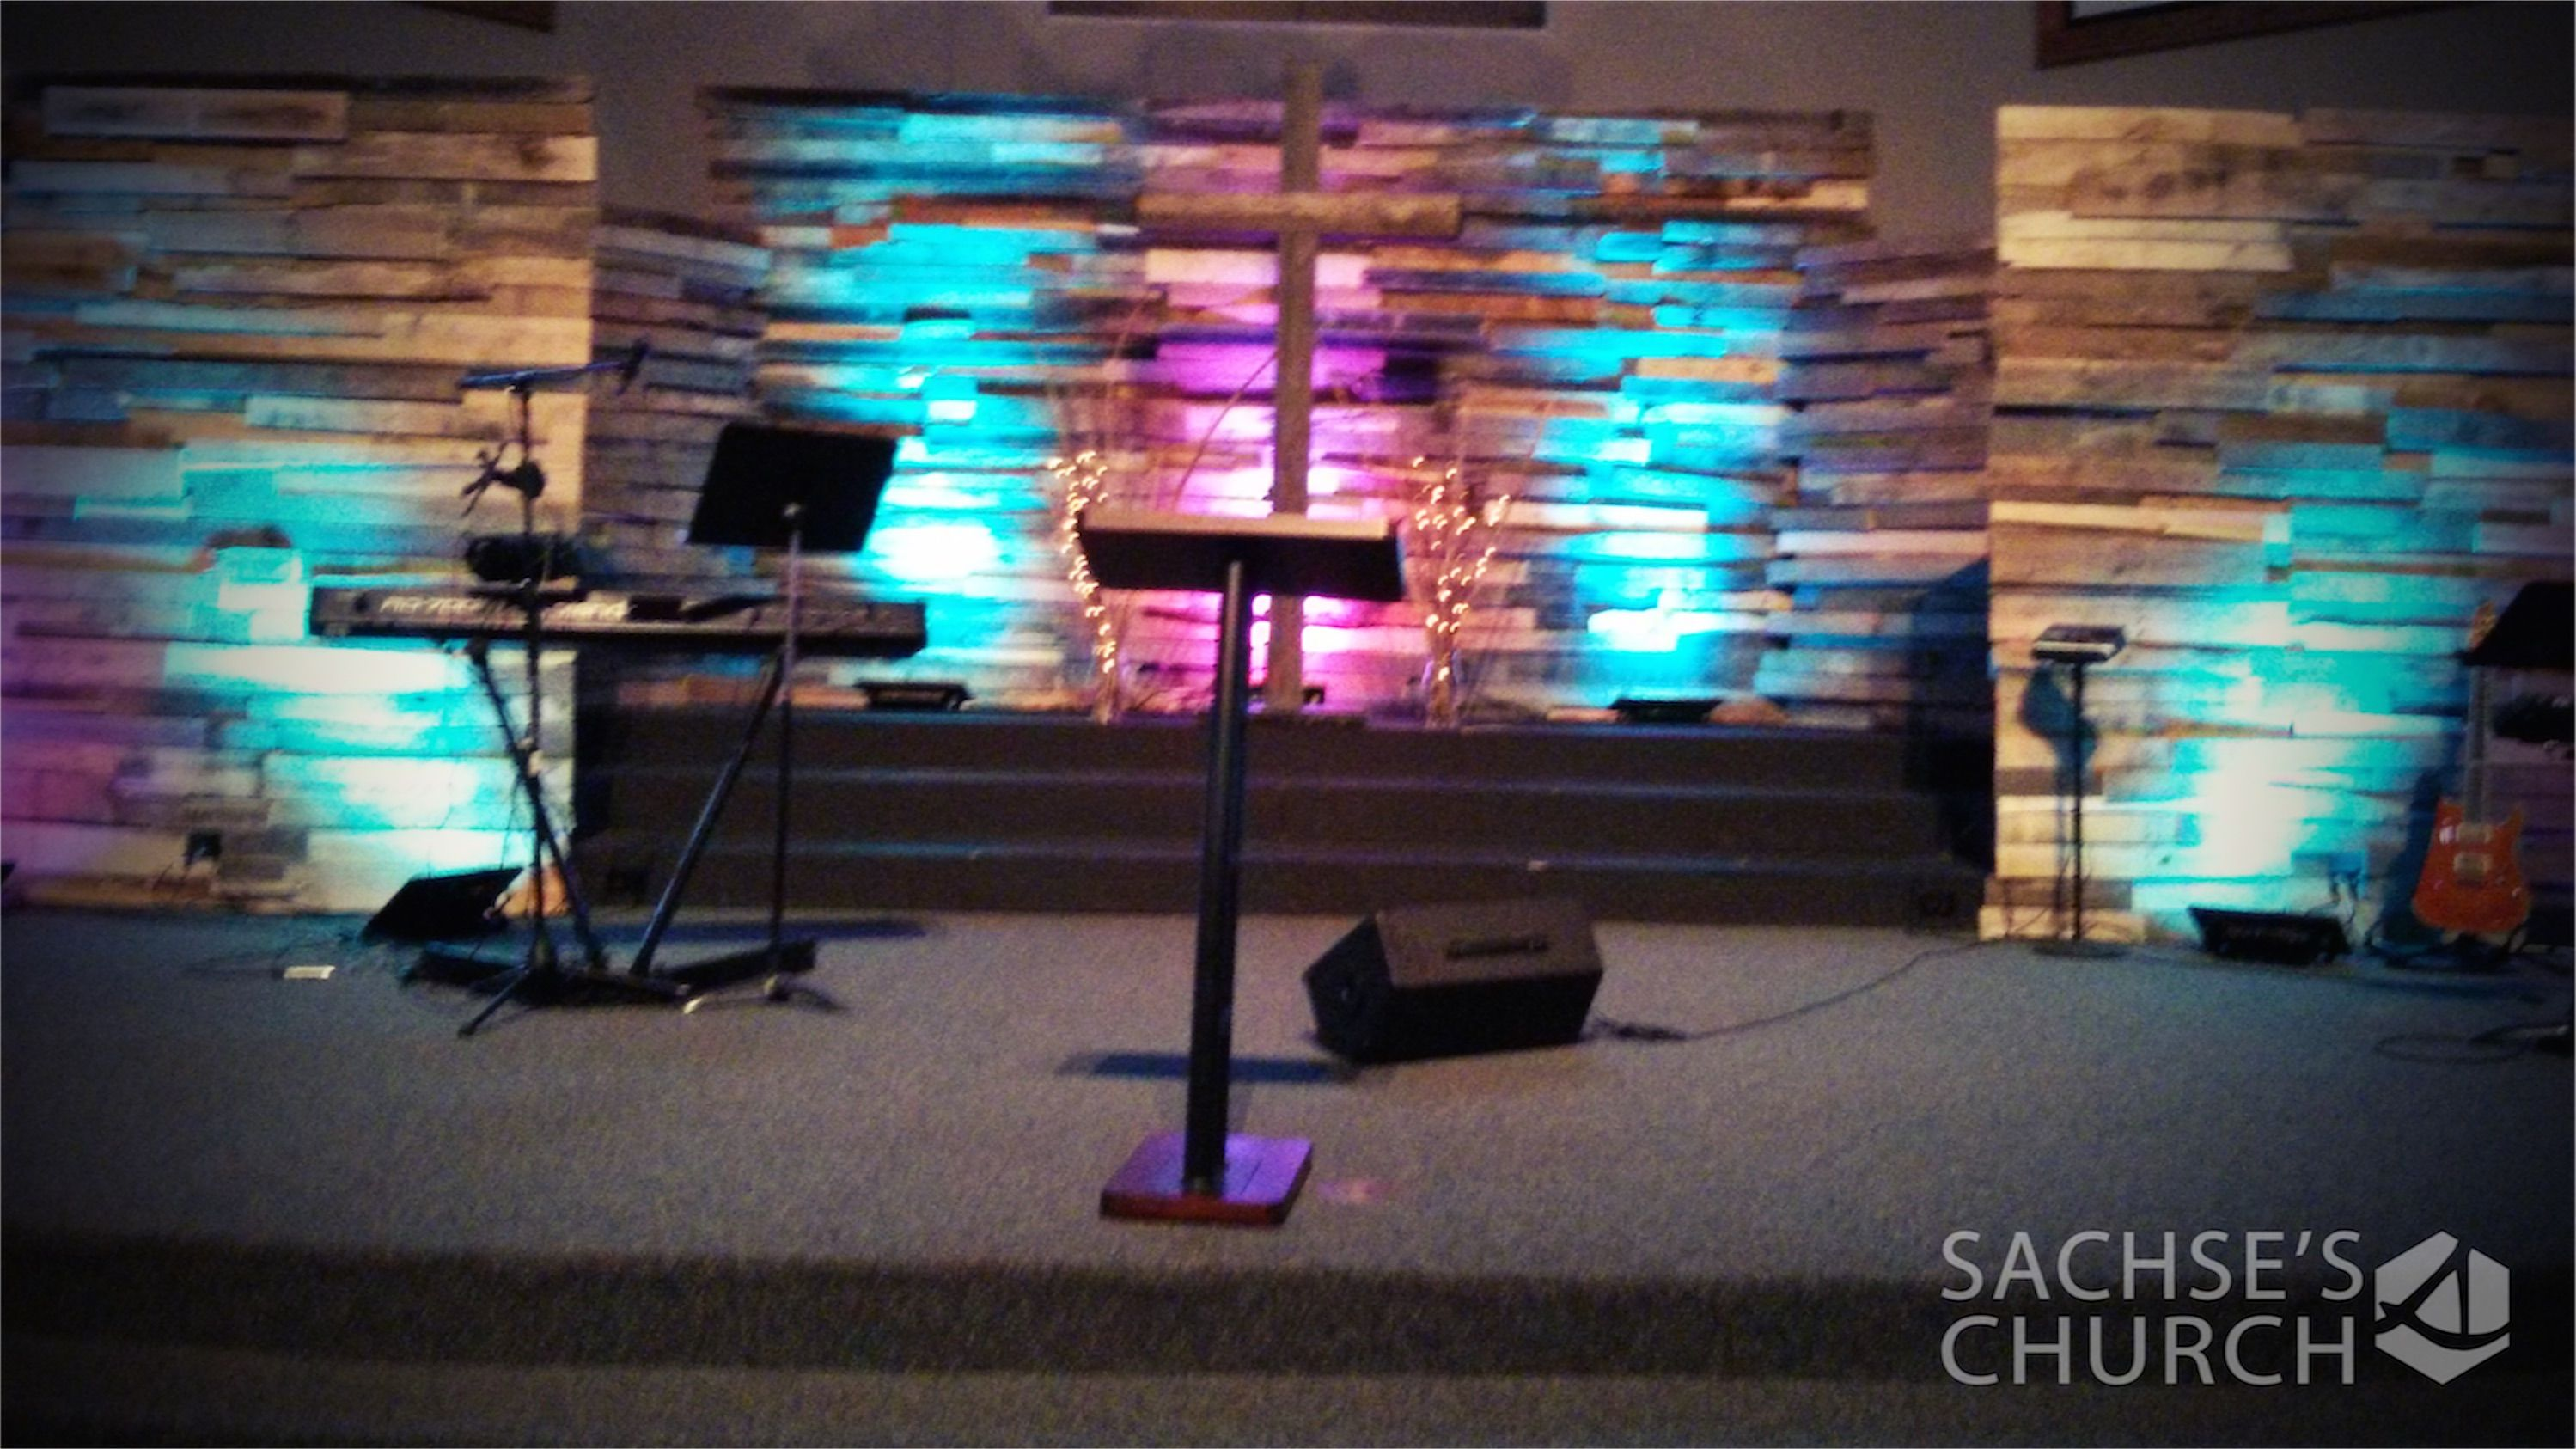 adam west from sachses church in sachse tx brings us this mixture of pallets and stage backdropsbackdrop ideaschurch stage designstage lighting church - Small Church Stage Design Ideas